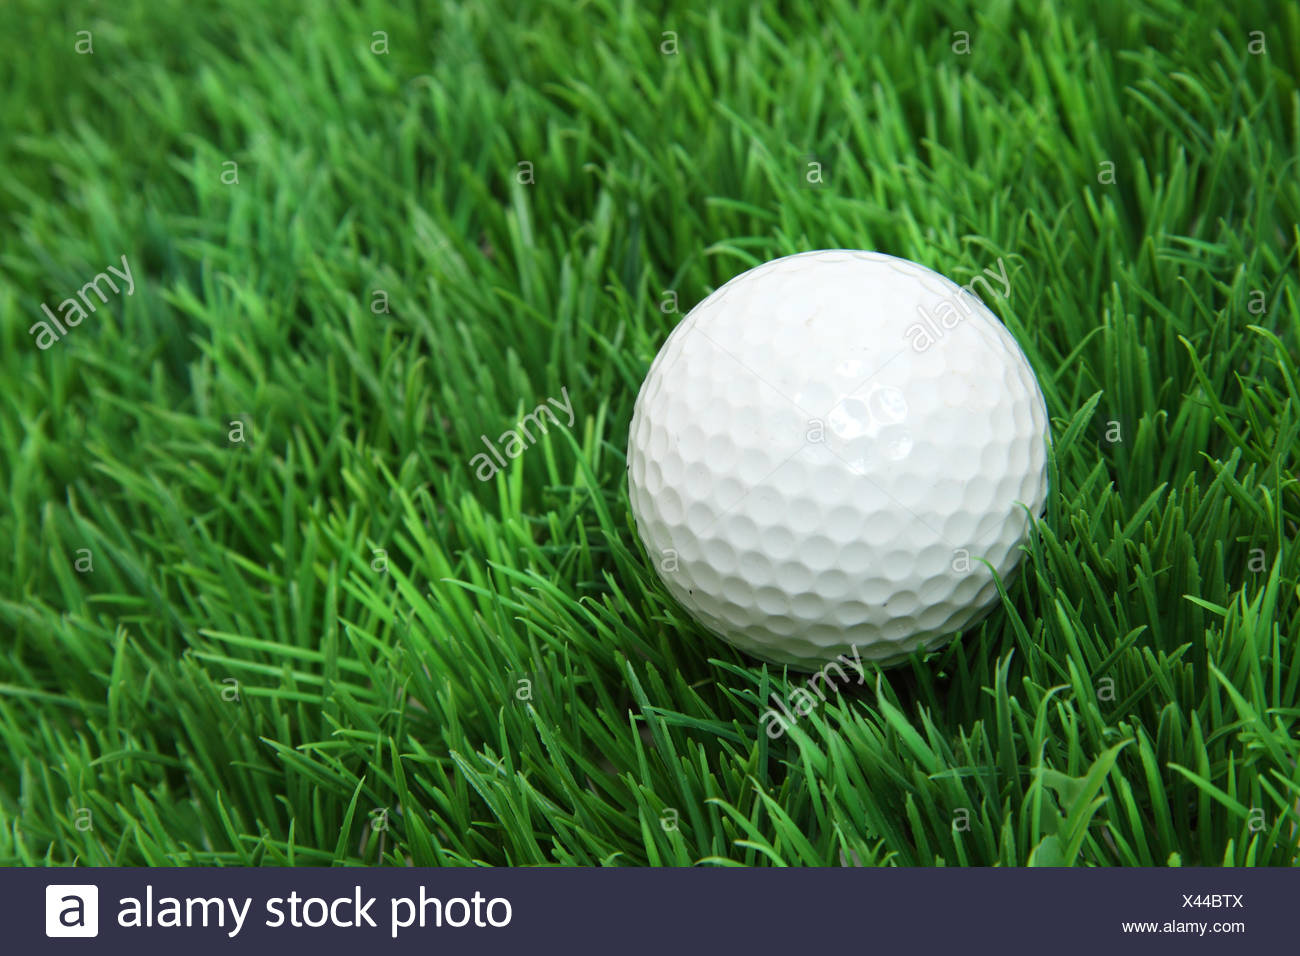 Golfball - Stock Image